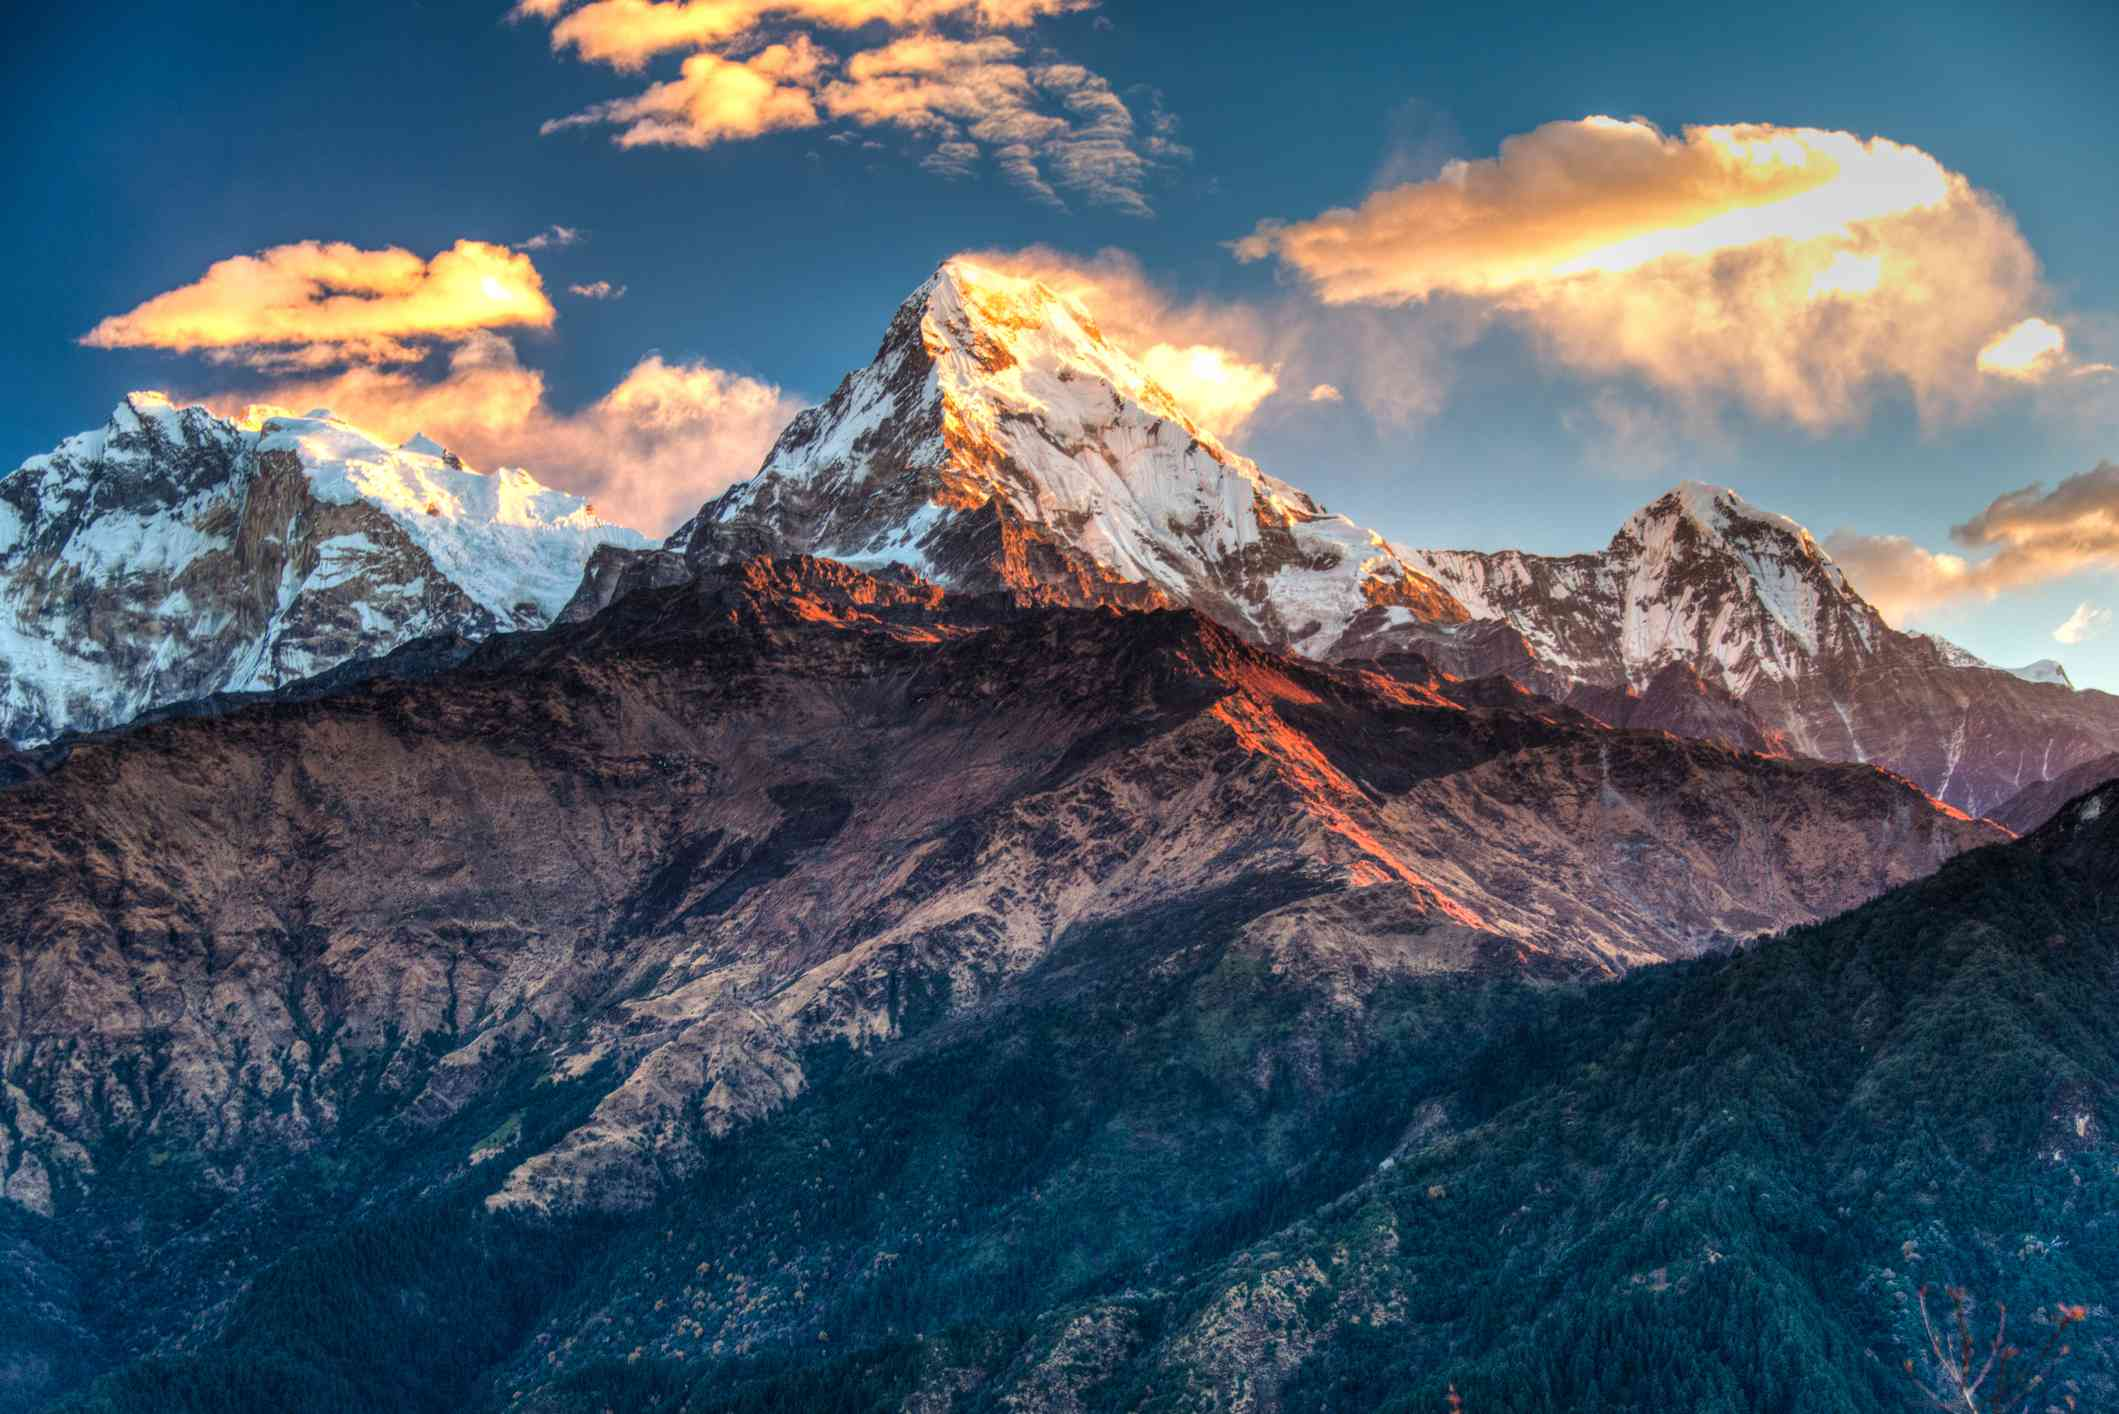 Annapurna in north central Nepal